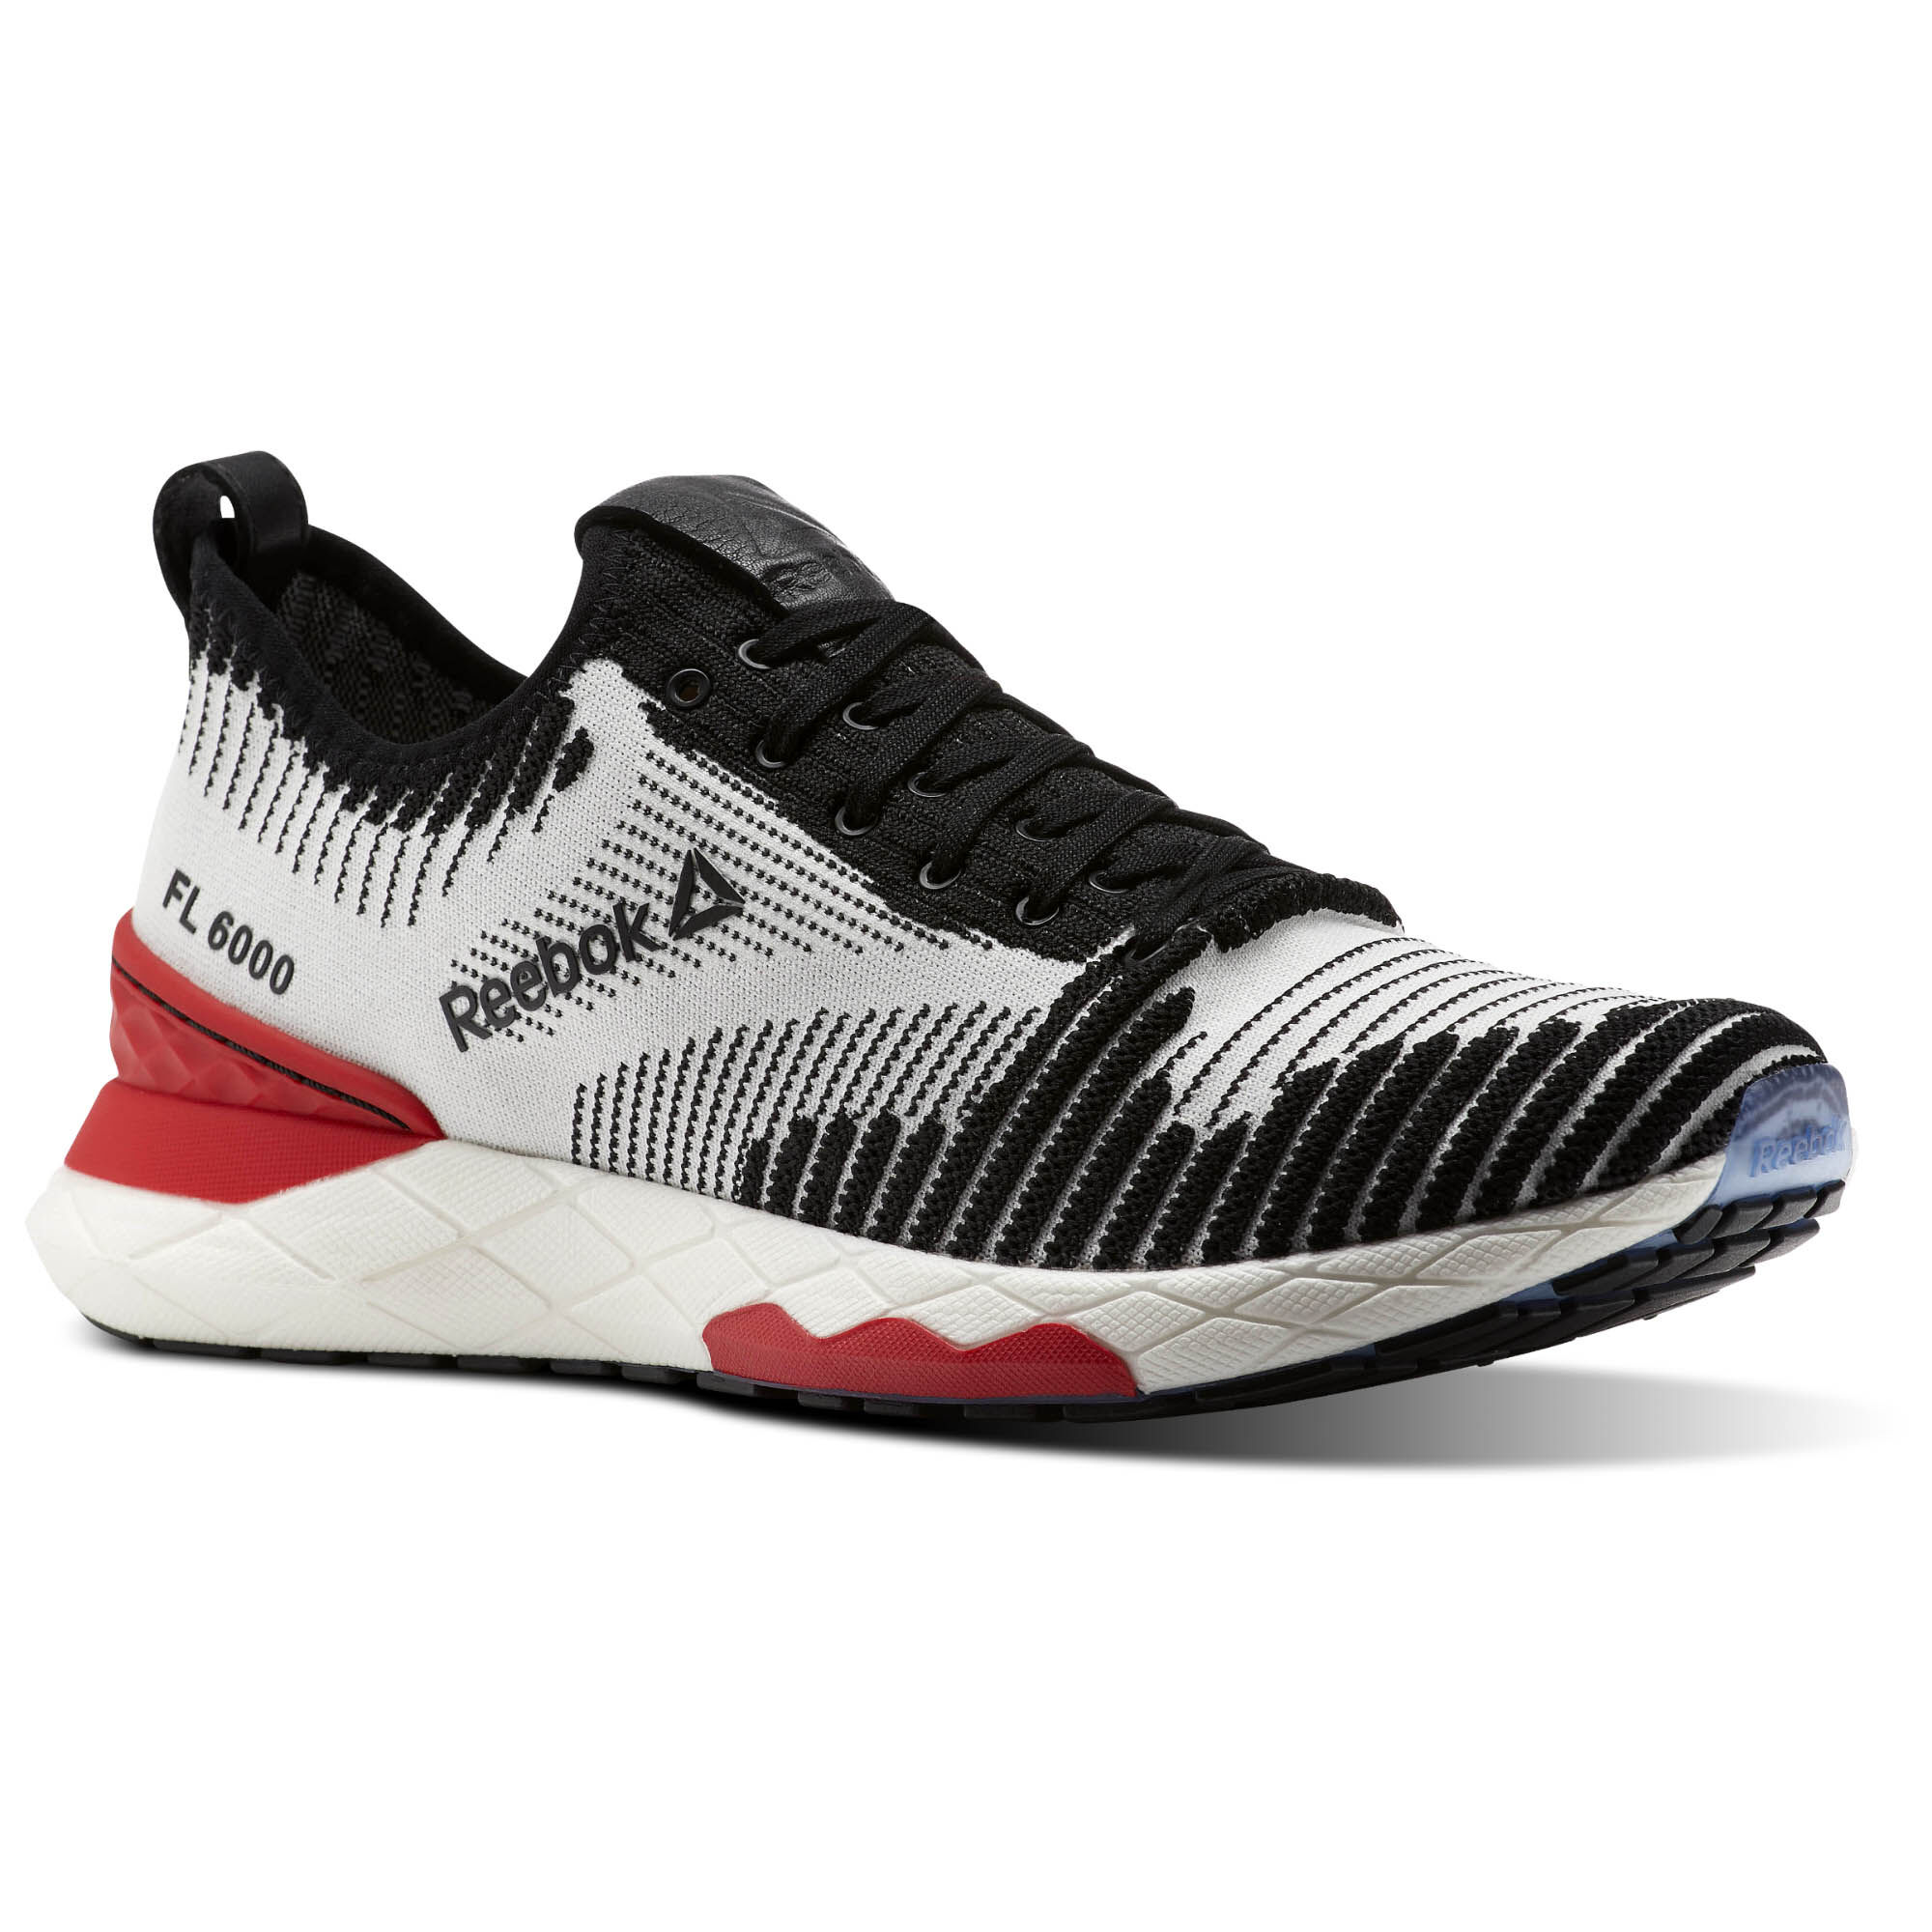 Reebok Floatride 6000 Buy Online Authentic 2018 New Cheap Online Cost Sale Online Clearance Online Amazon jzSCvRUS